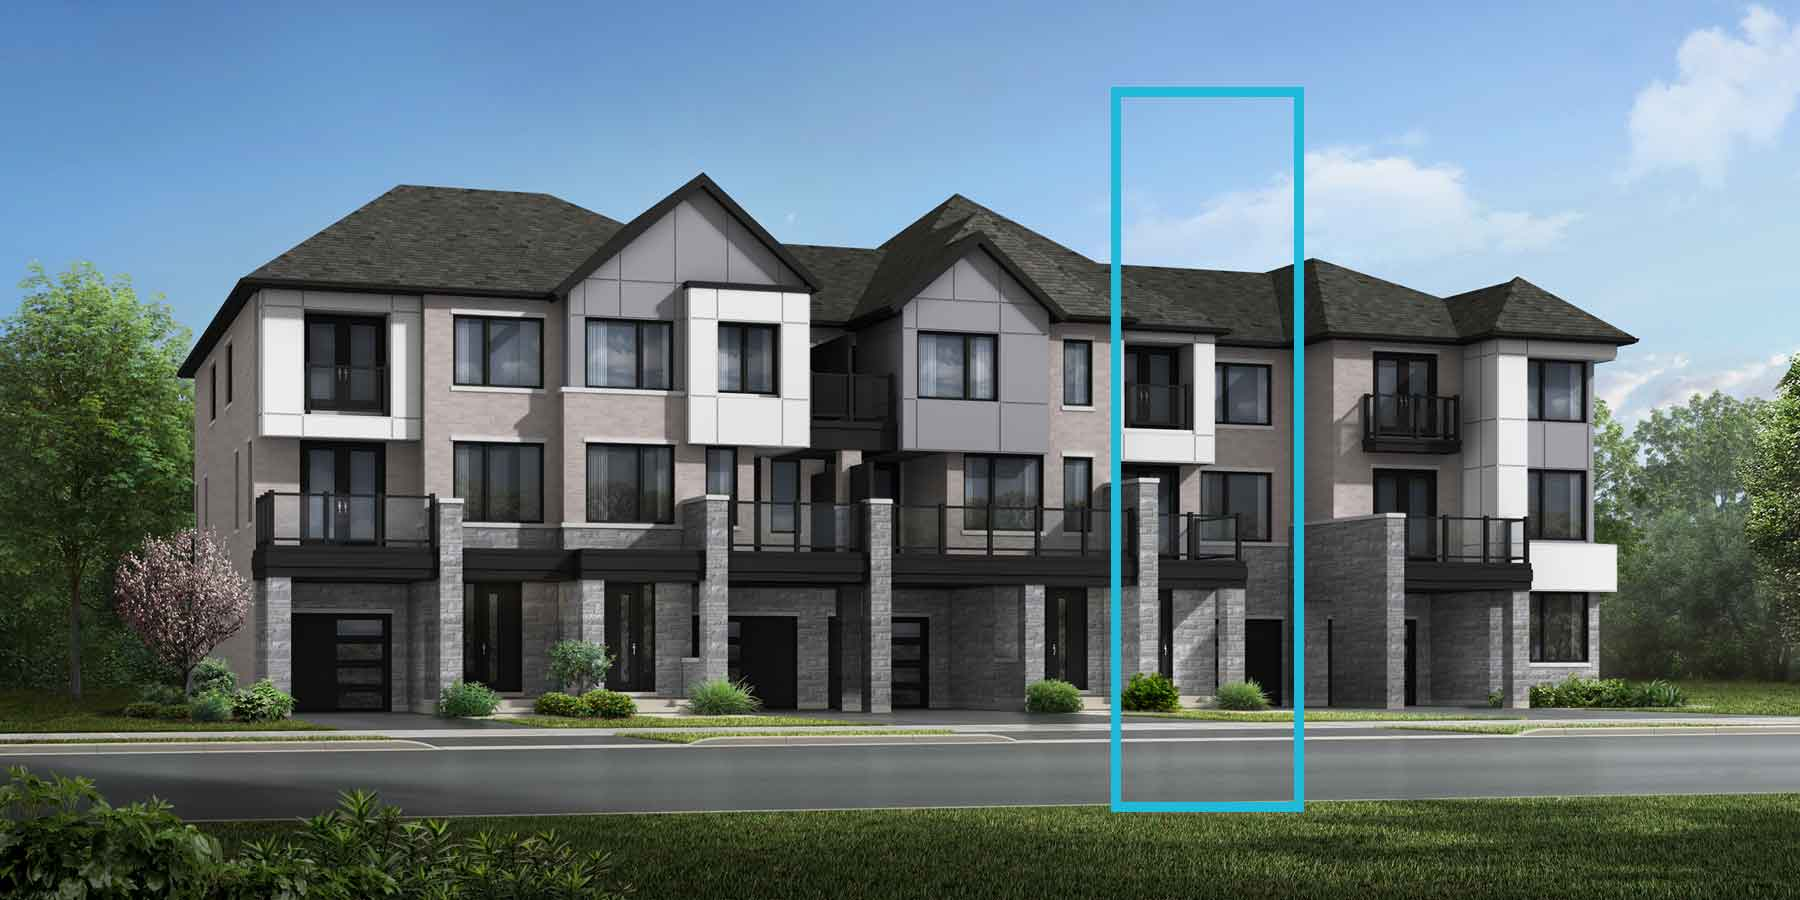 Aldgate Plan TownHomes at The Nine in Mississauga Ontario by Mattamy Homes